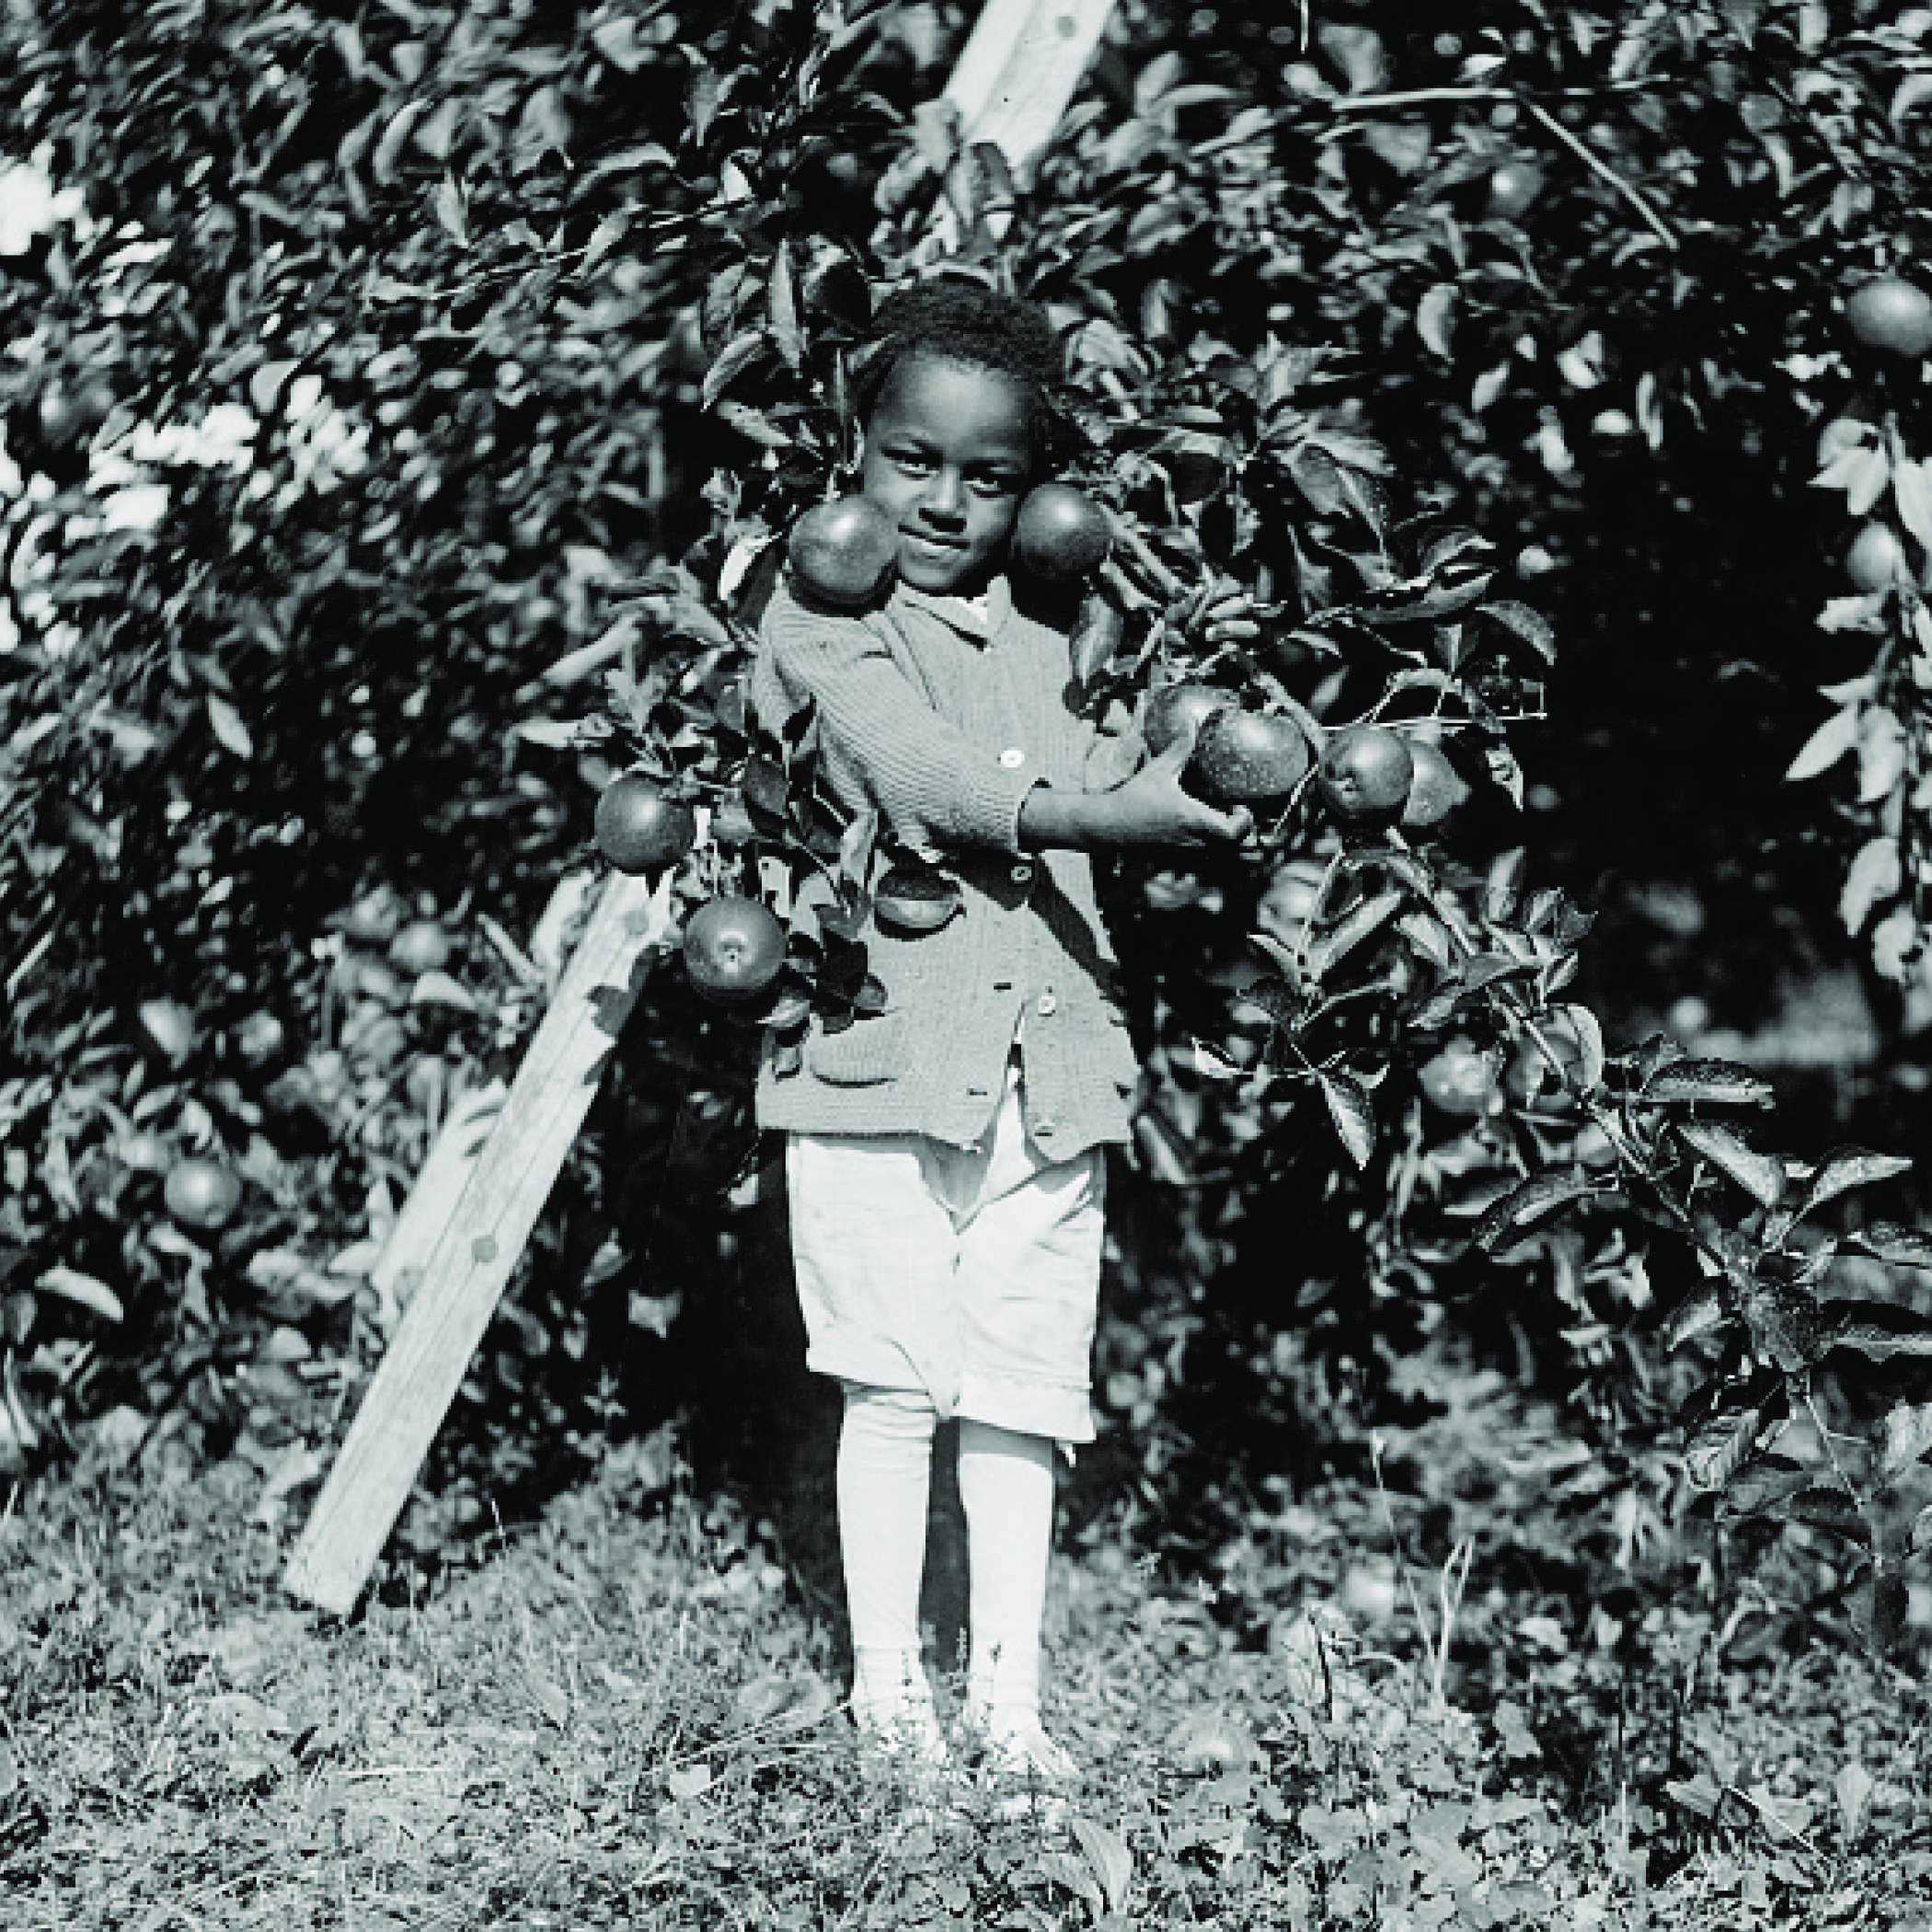 vintage photograph of a young boy standing among apple branches holding an apple in his hand